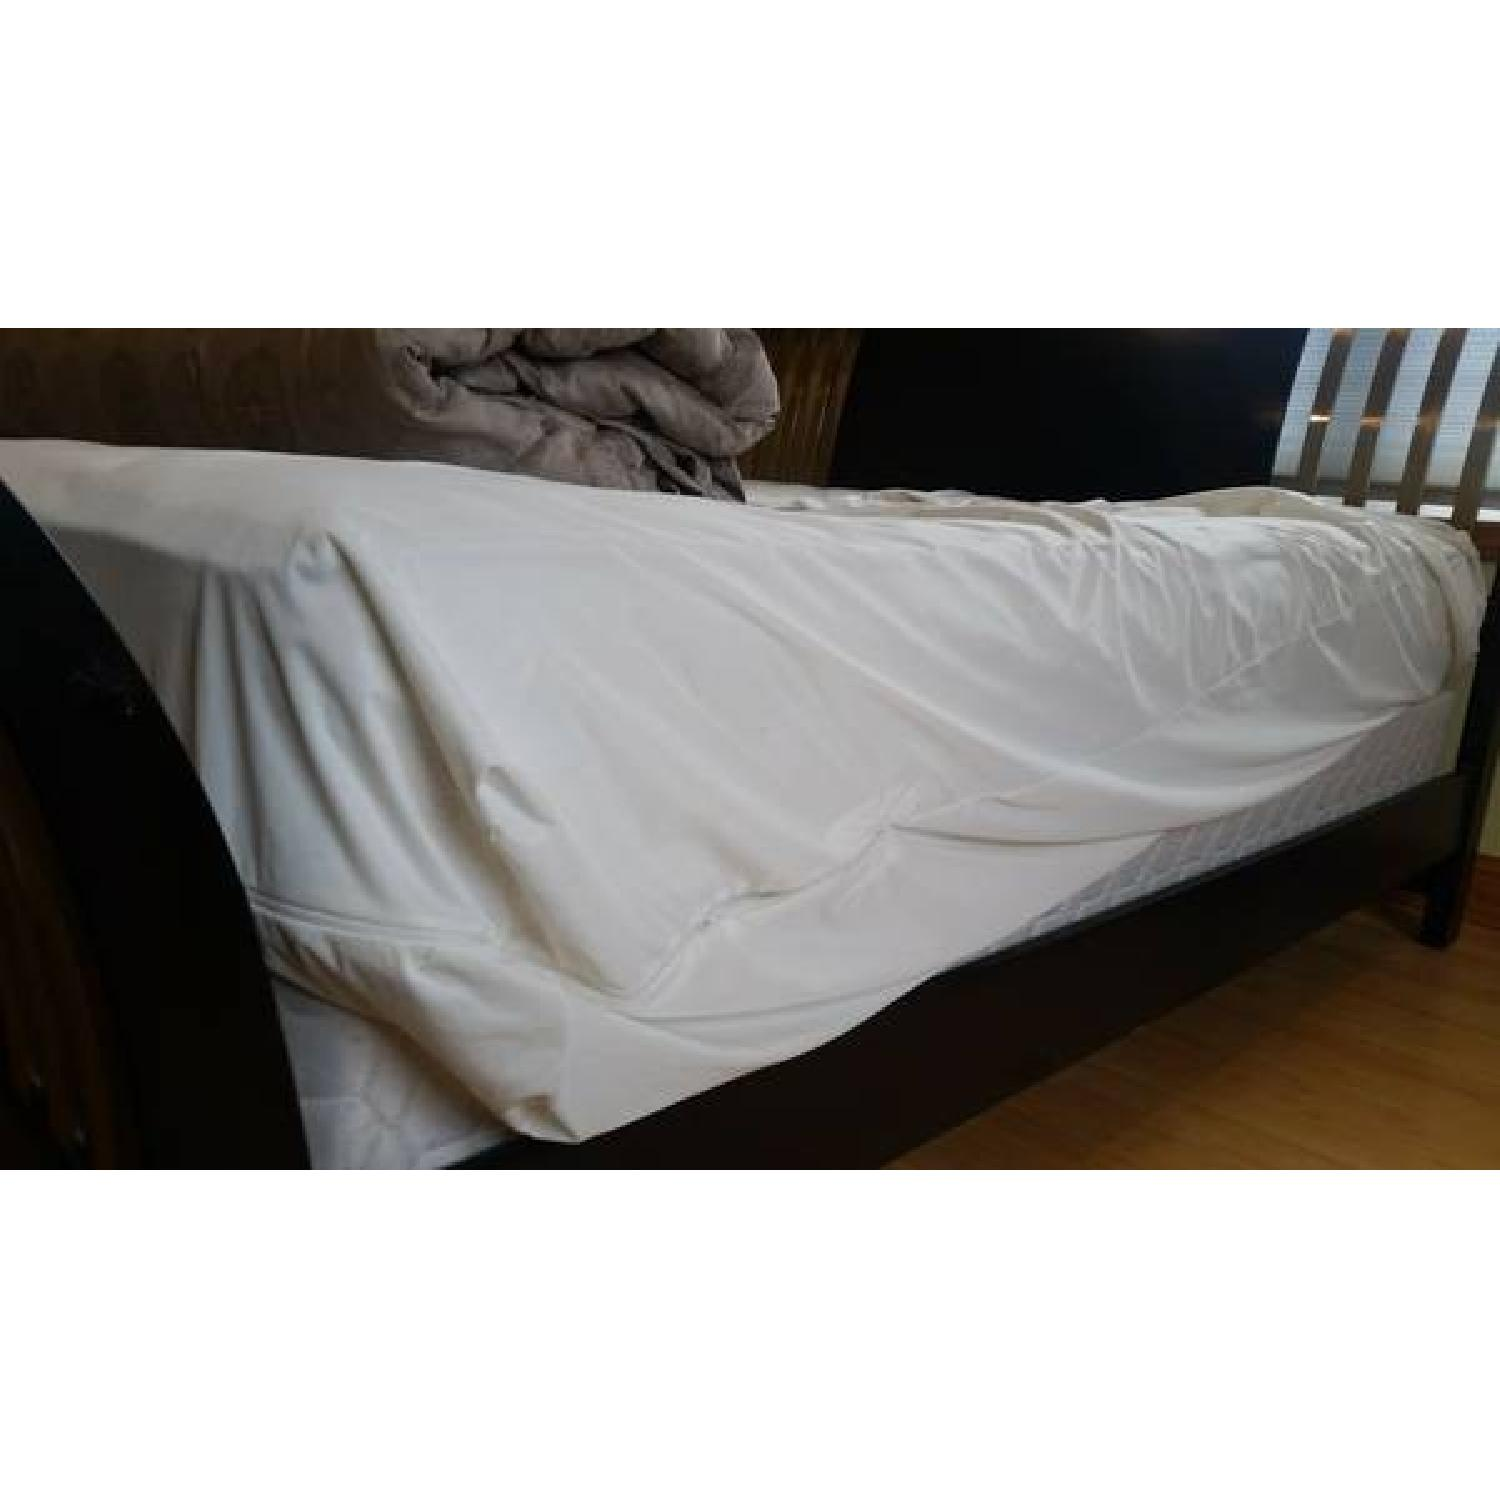 King Size Sleigh Bed Frame - image-1